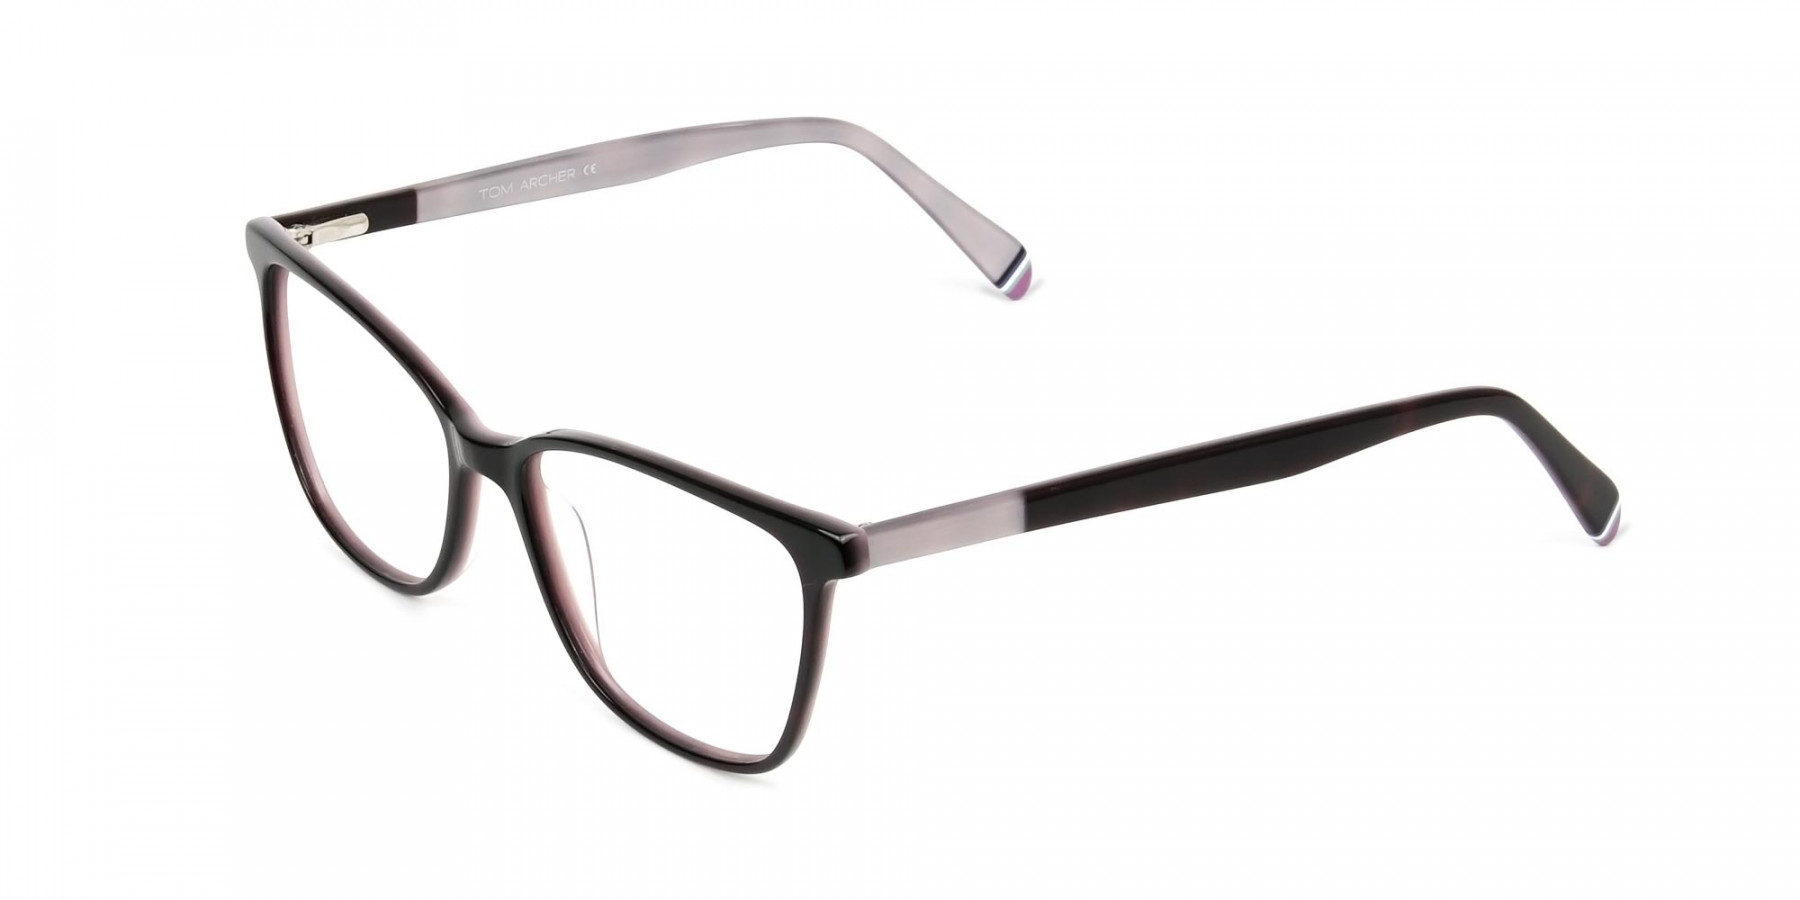 Dark Brown & Silver Lilac Rectangular Spectacles - 1